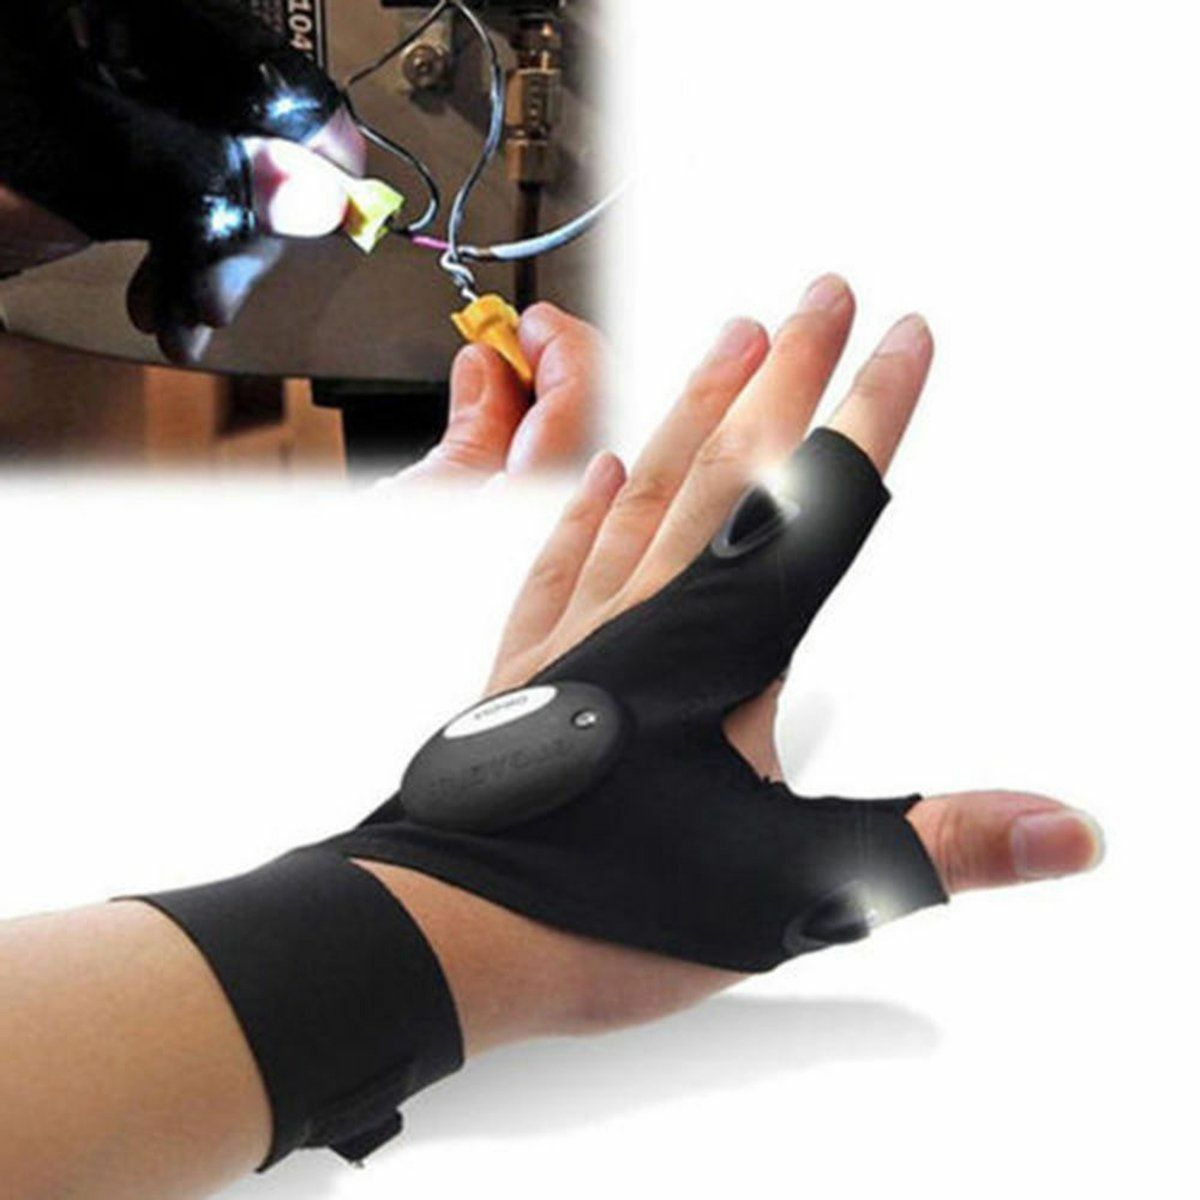 Finger glove with led light flashlight tools outdoor gear rescue picture 12 of 14 mozeypictures Images